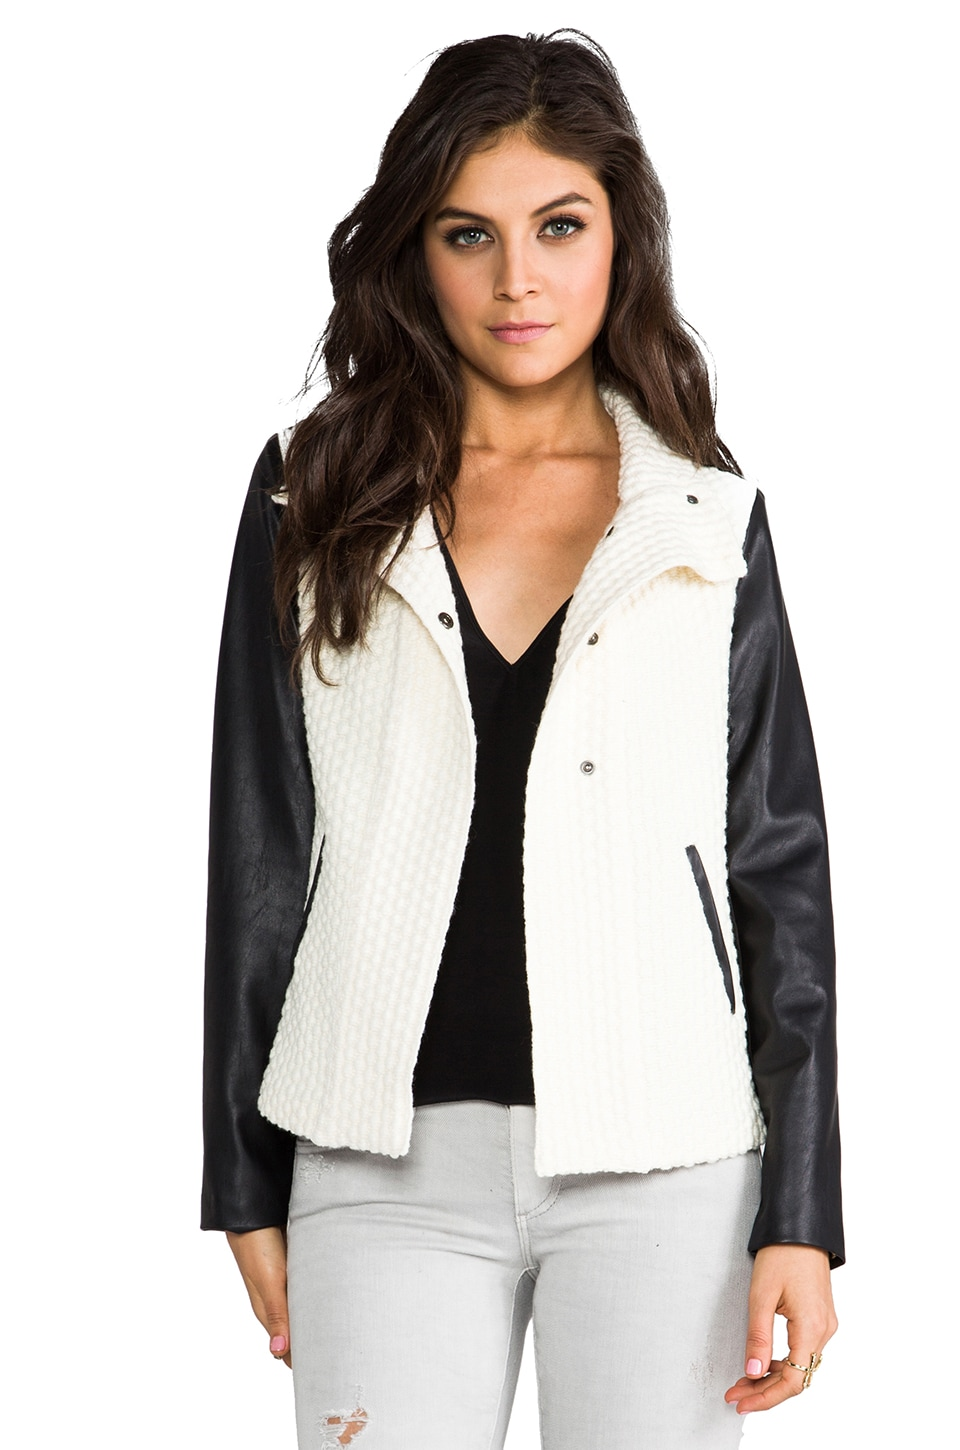 Generation Love Yoko Leather Sleeve Popcorn Jacket in Black/White